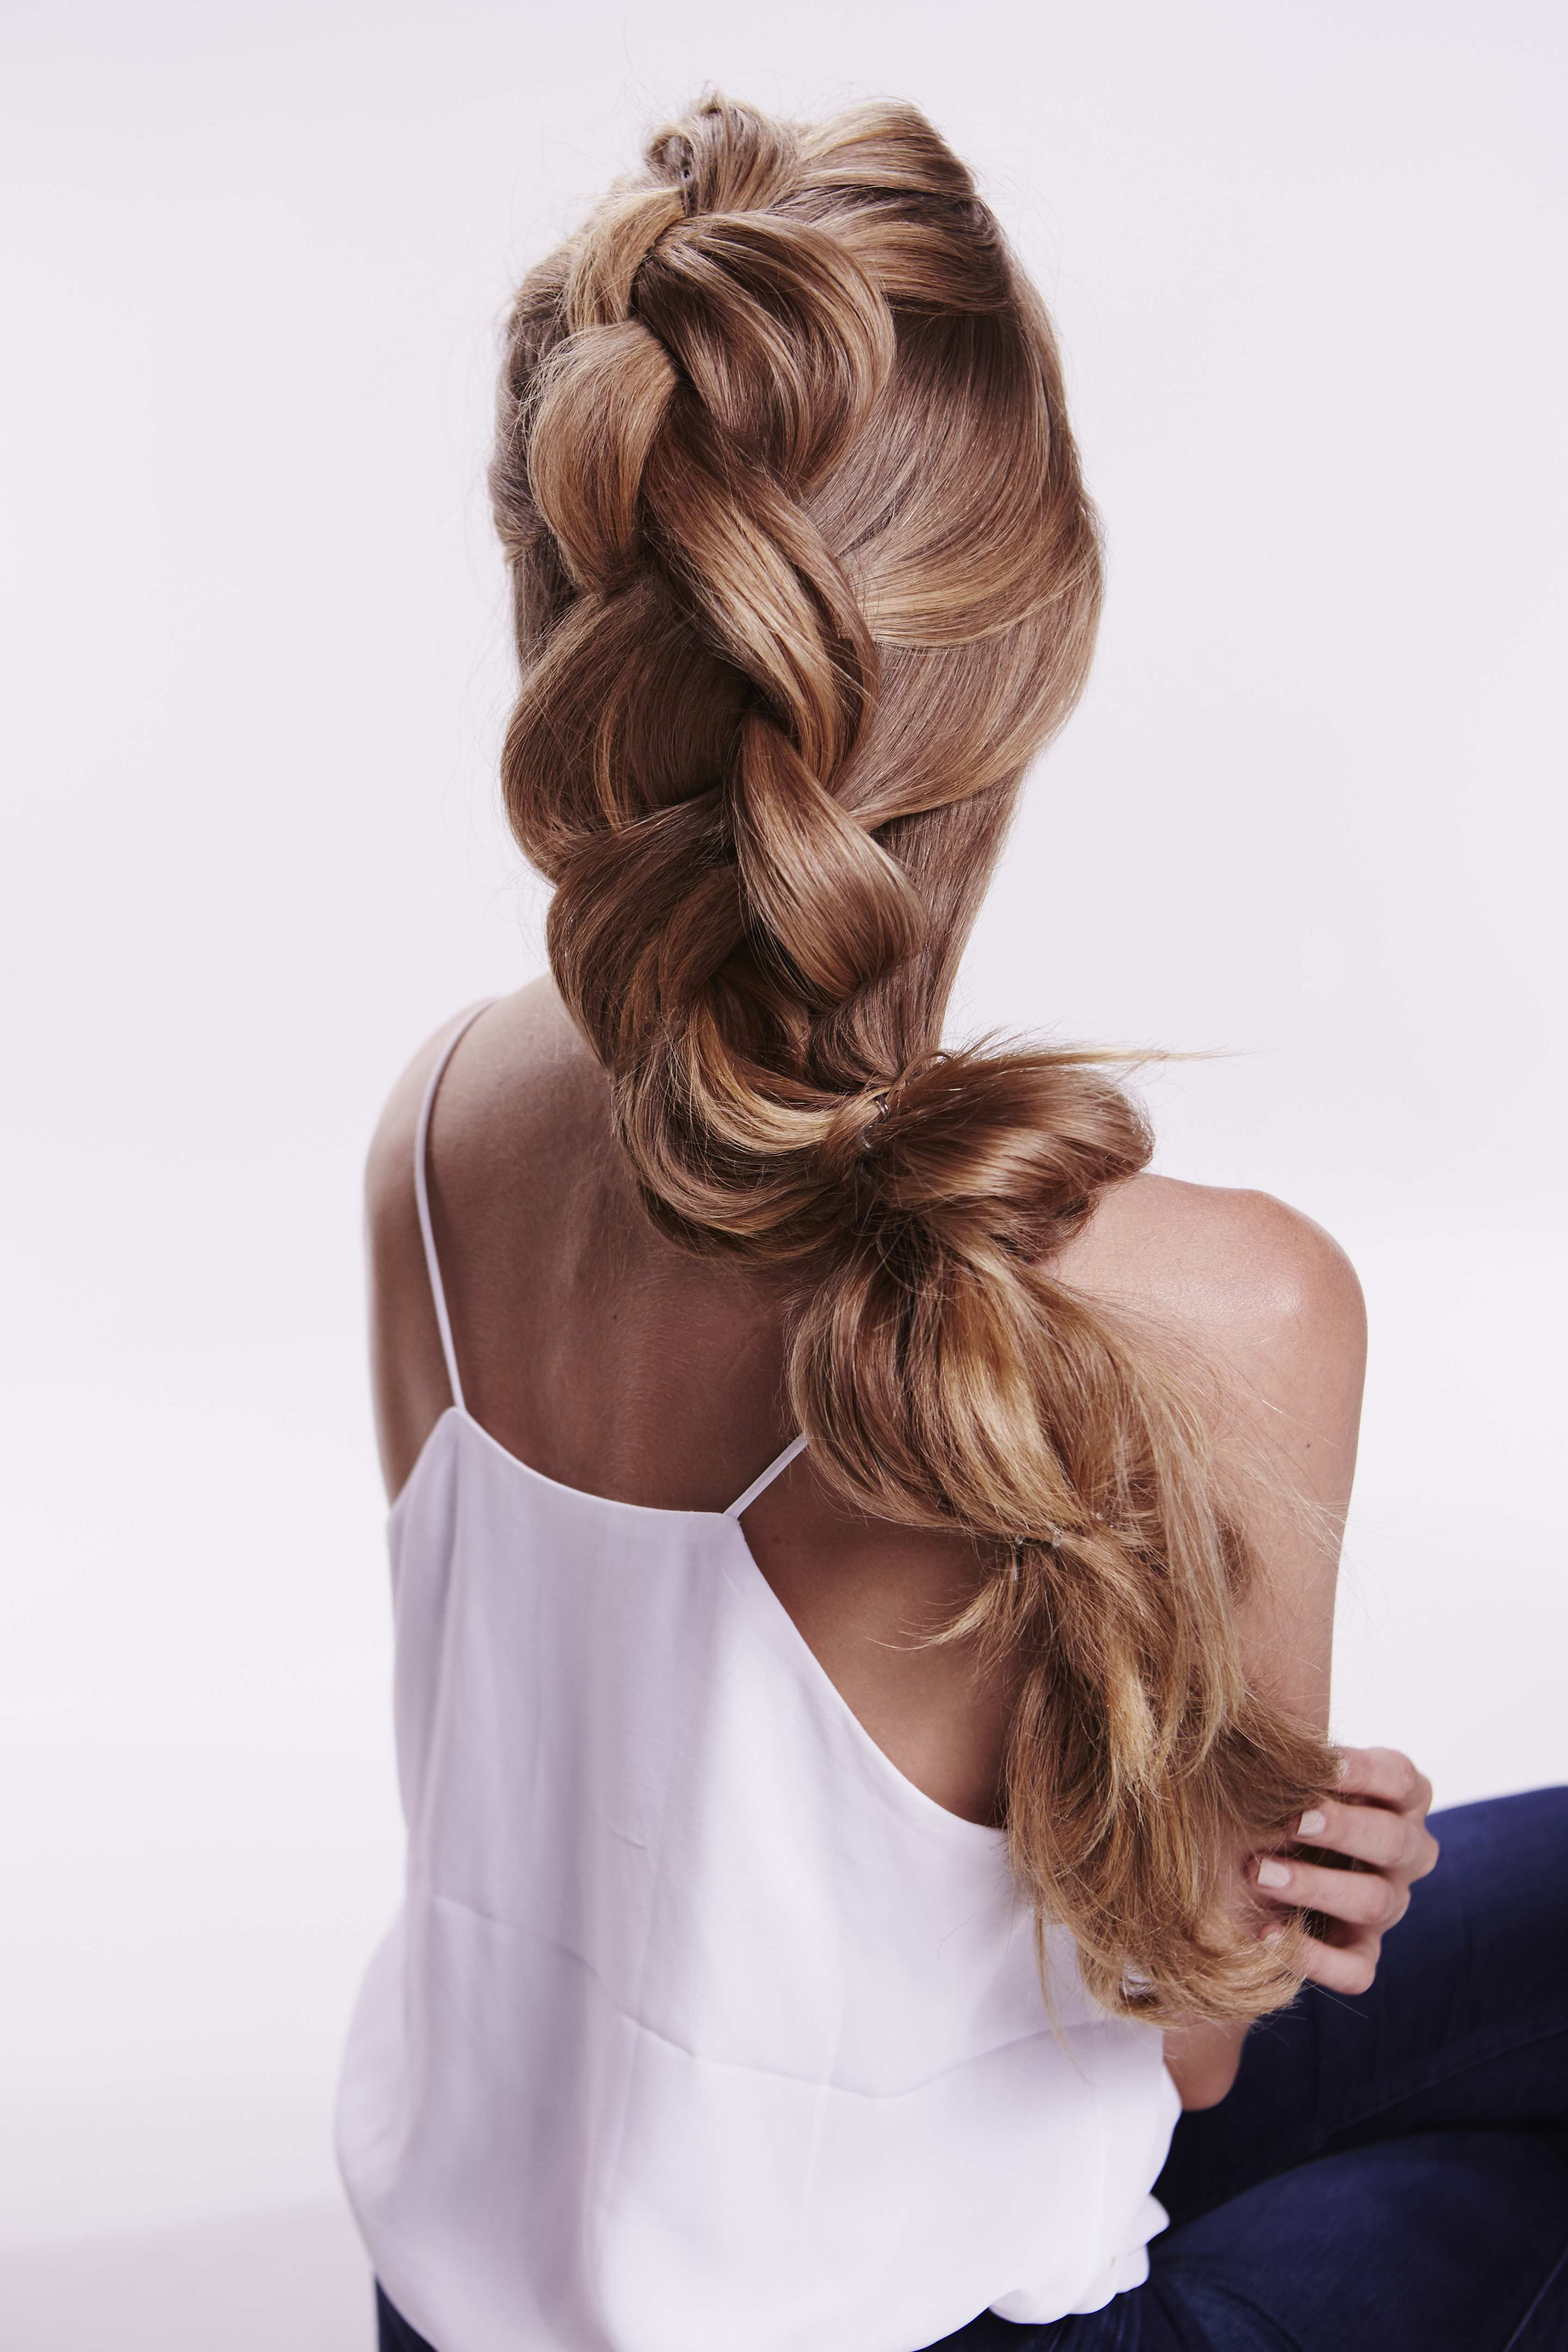 Best ideas about Invisibobble Hairstyles . Save or Pin mermaid braid tutorial • by Pinterest Now.